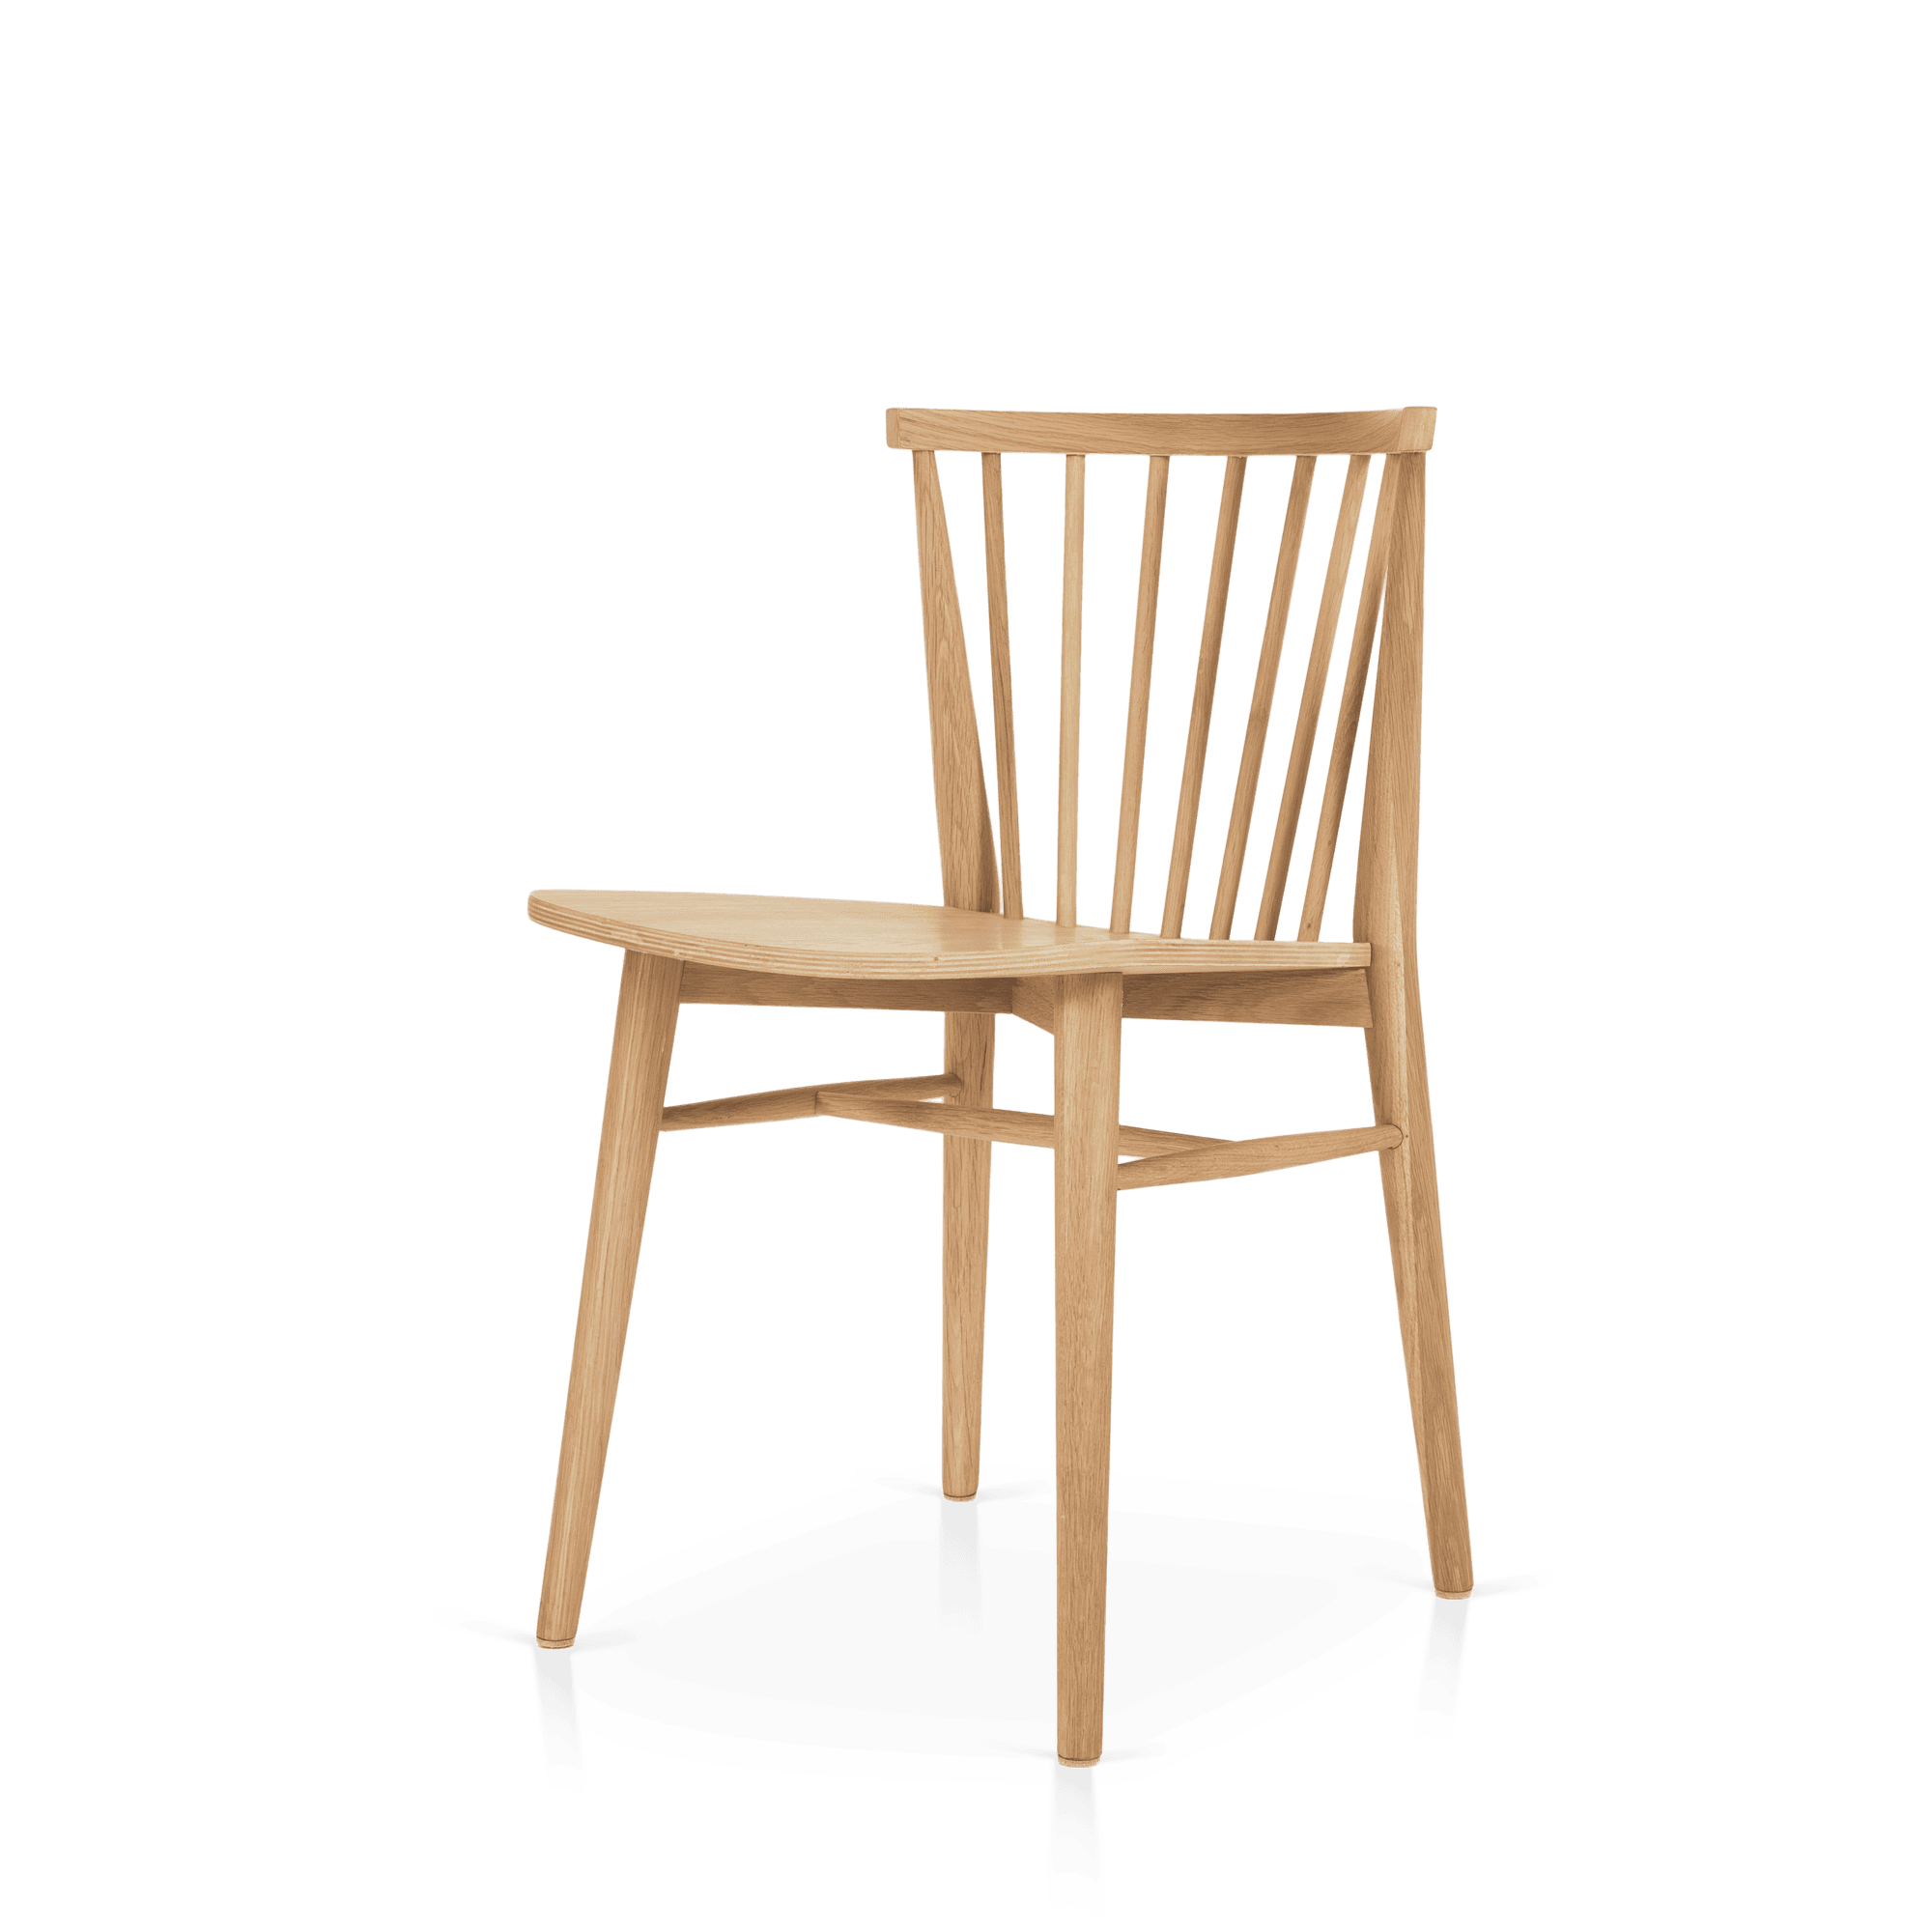 The Wood Room Dining Chair Design Chair Dining Chairs